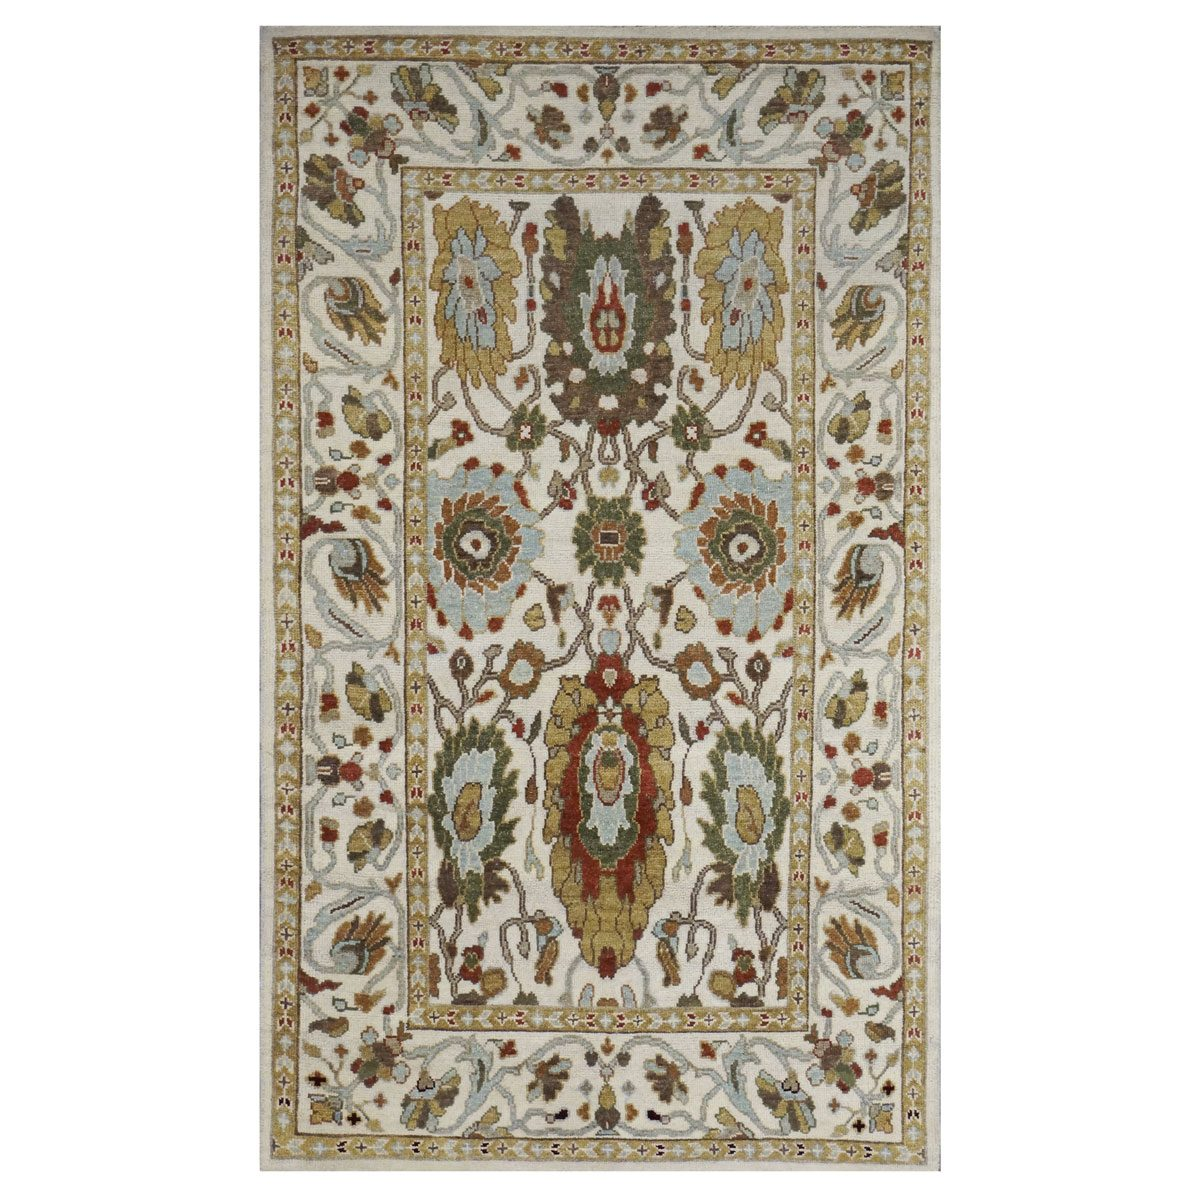 www.ashlyrugs.com Sultanabad Masters Collection Area Rug 4 x 6 Ivory